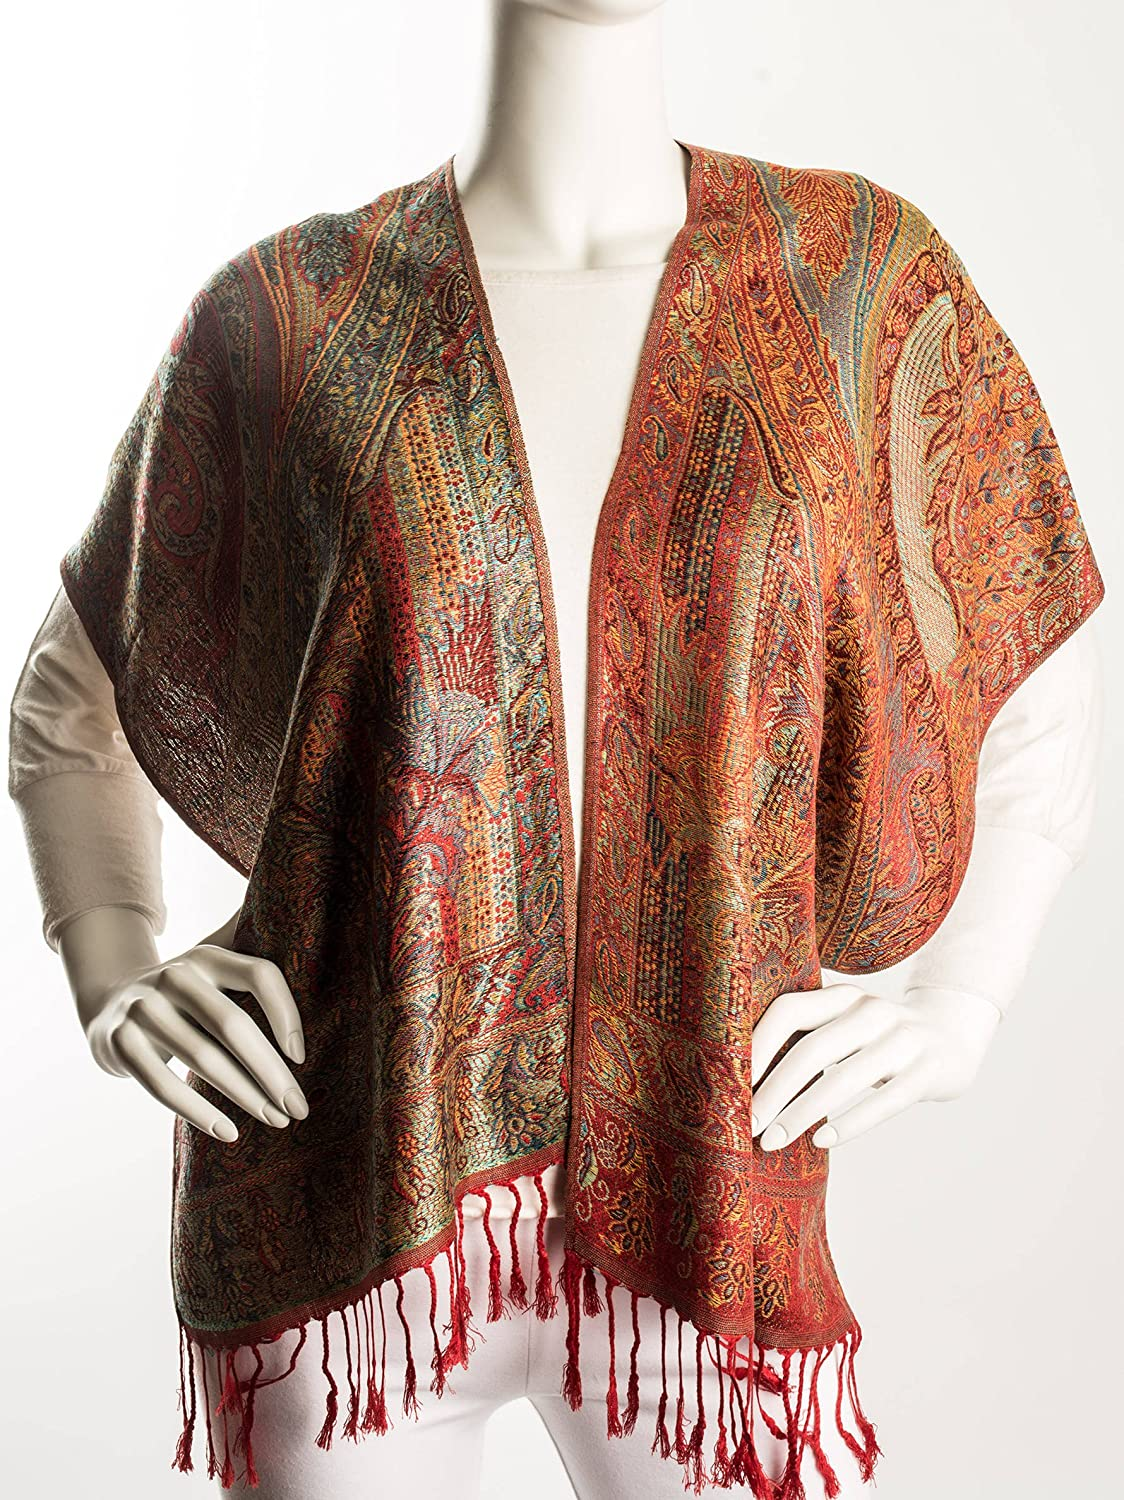 Vintage Scarves- New in the 1920s to 1960s Styles Bohomonde Rajana Scarf Pashmina Indian Paisley Traditional Jacquard Scarf $29.95 AT vintagedancer.com